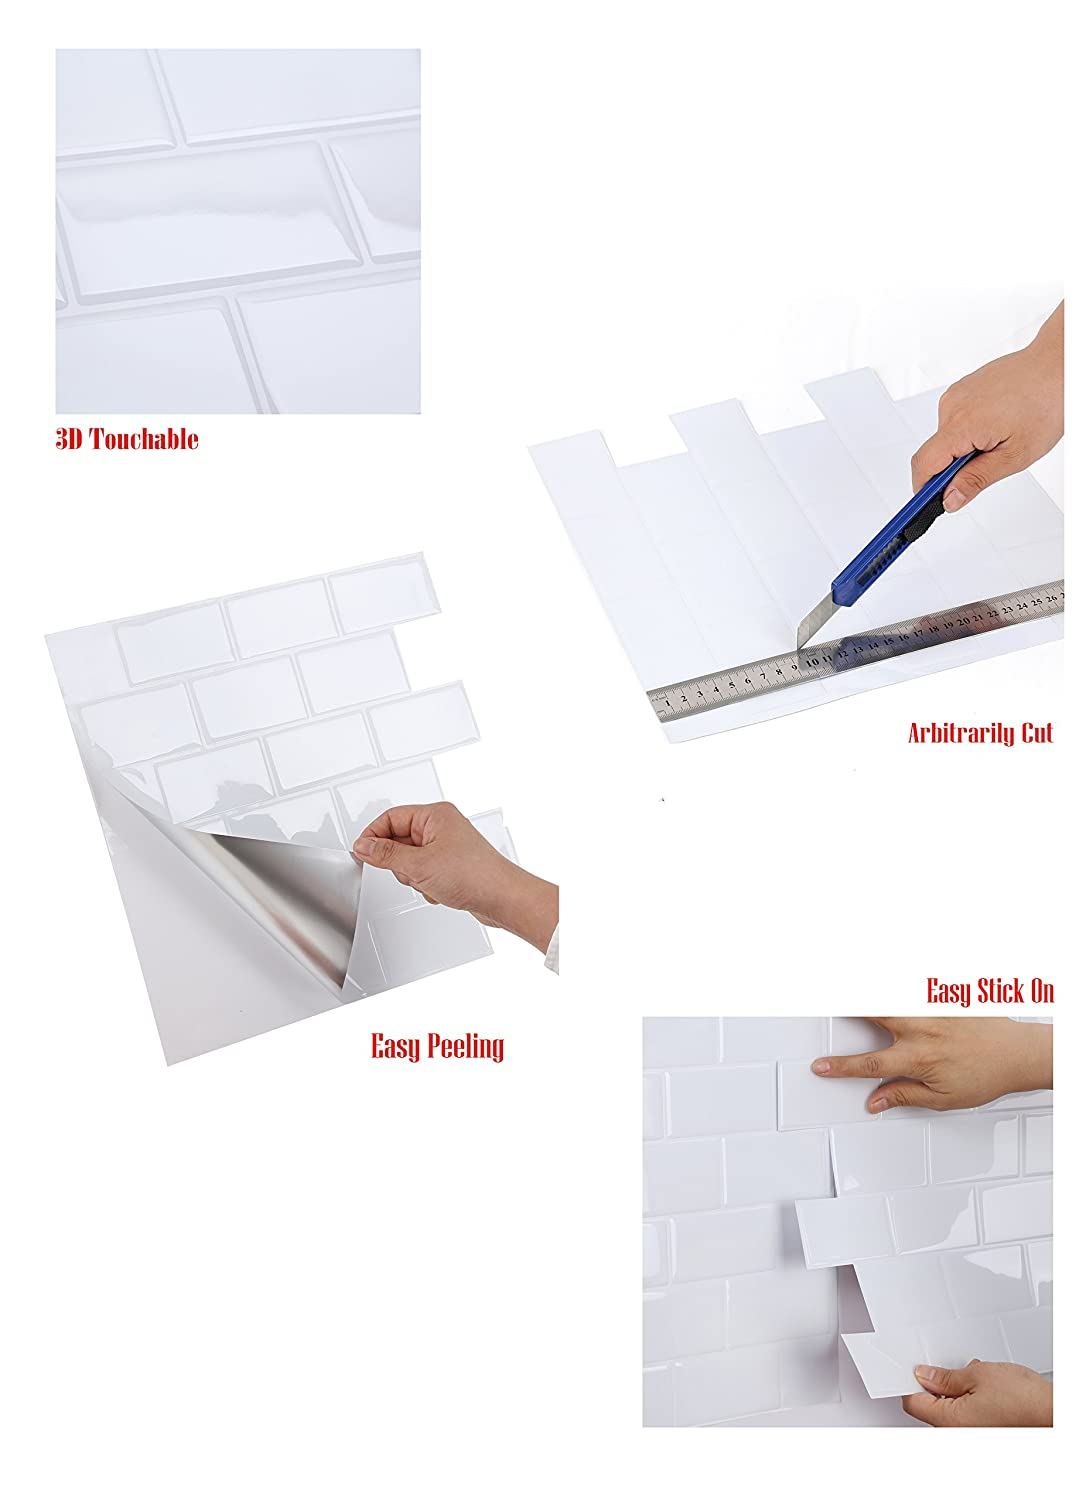 Wall Crafts® 3d sensorial mosaico Peel & stick azulejos cocina/baño Backsplash vinilo adhesivo decorativo para pared, 12